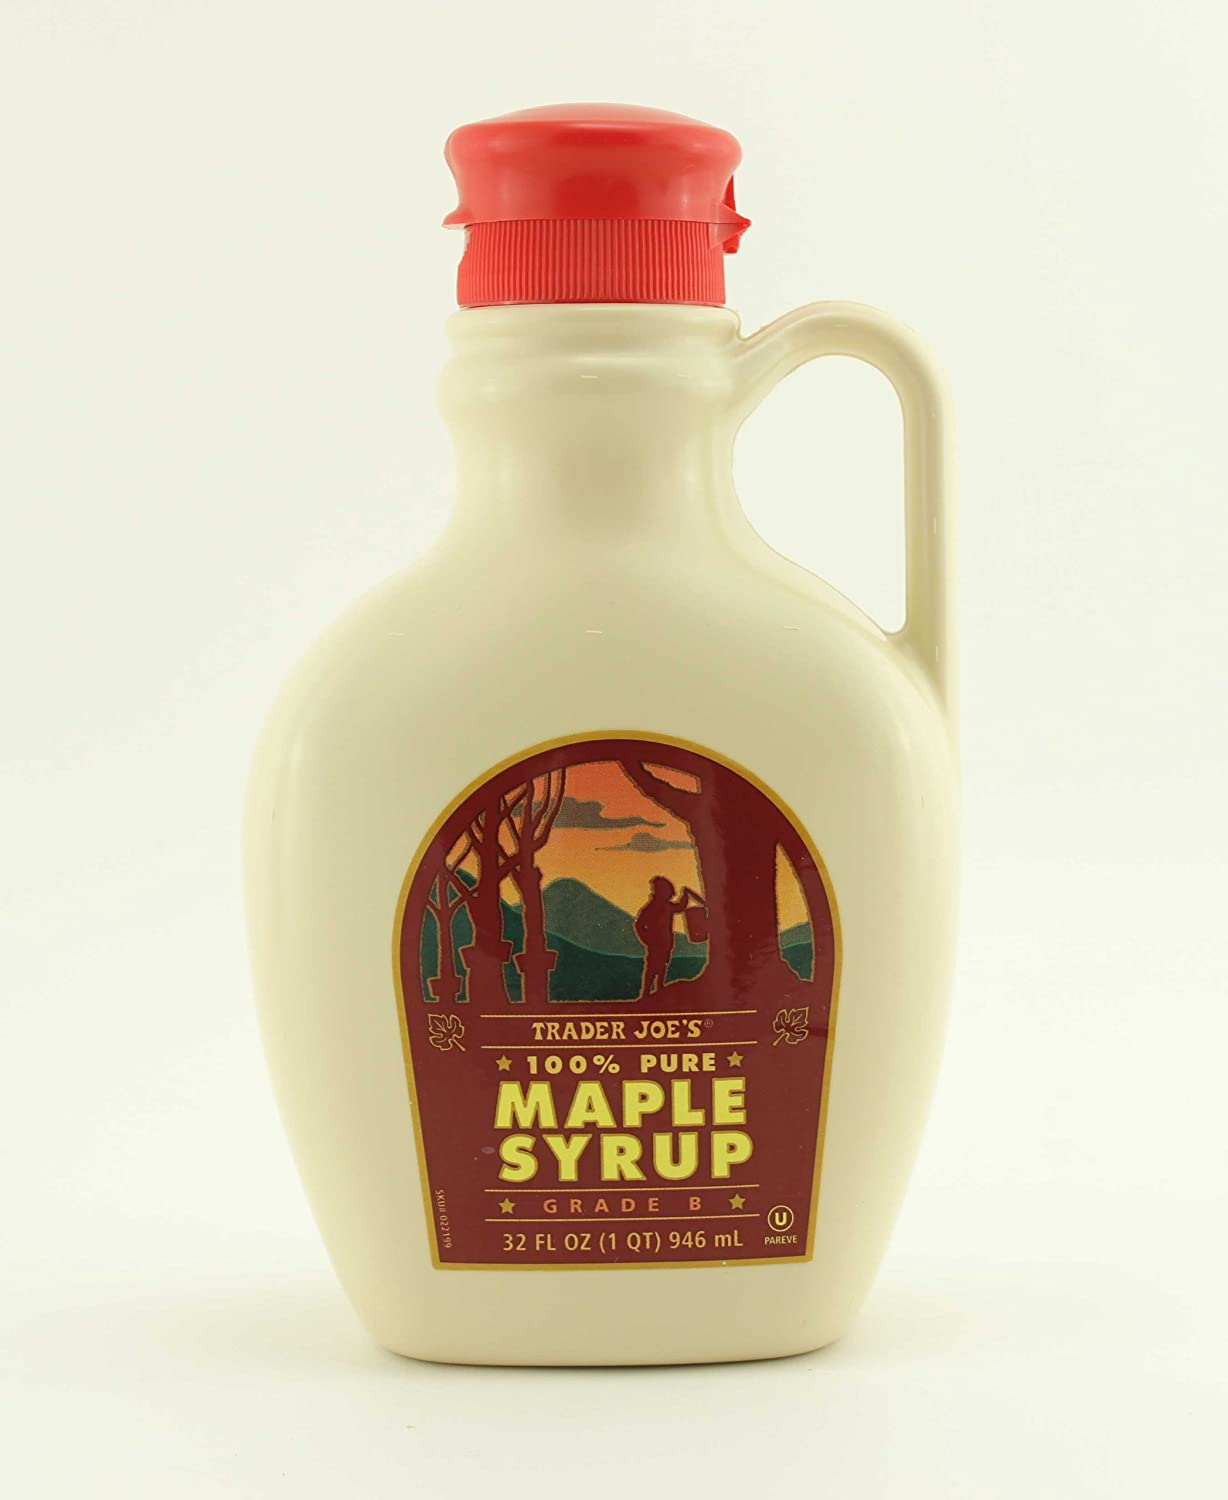 Trader Joes 100% Pure Maple Syrup